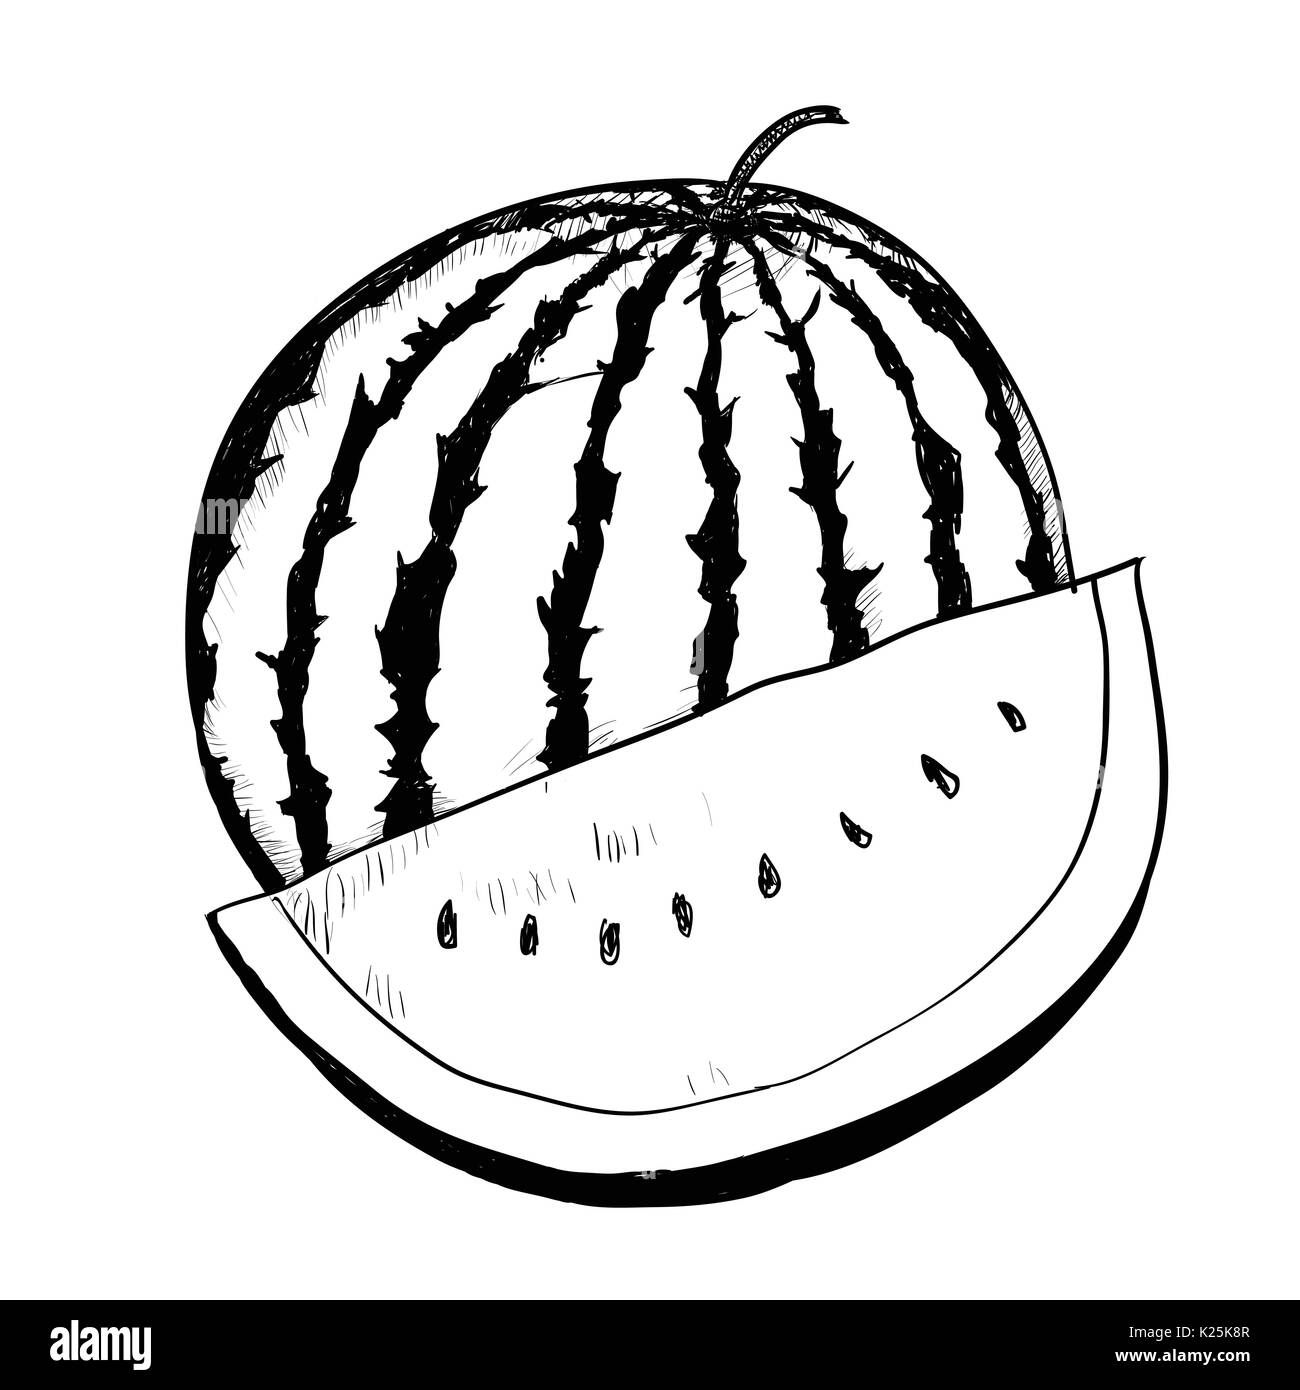 Watermelon black and white stock photos images alamy